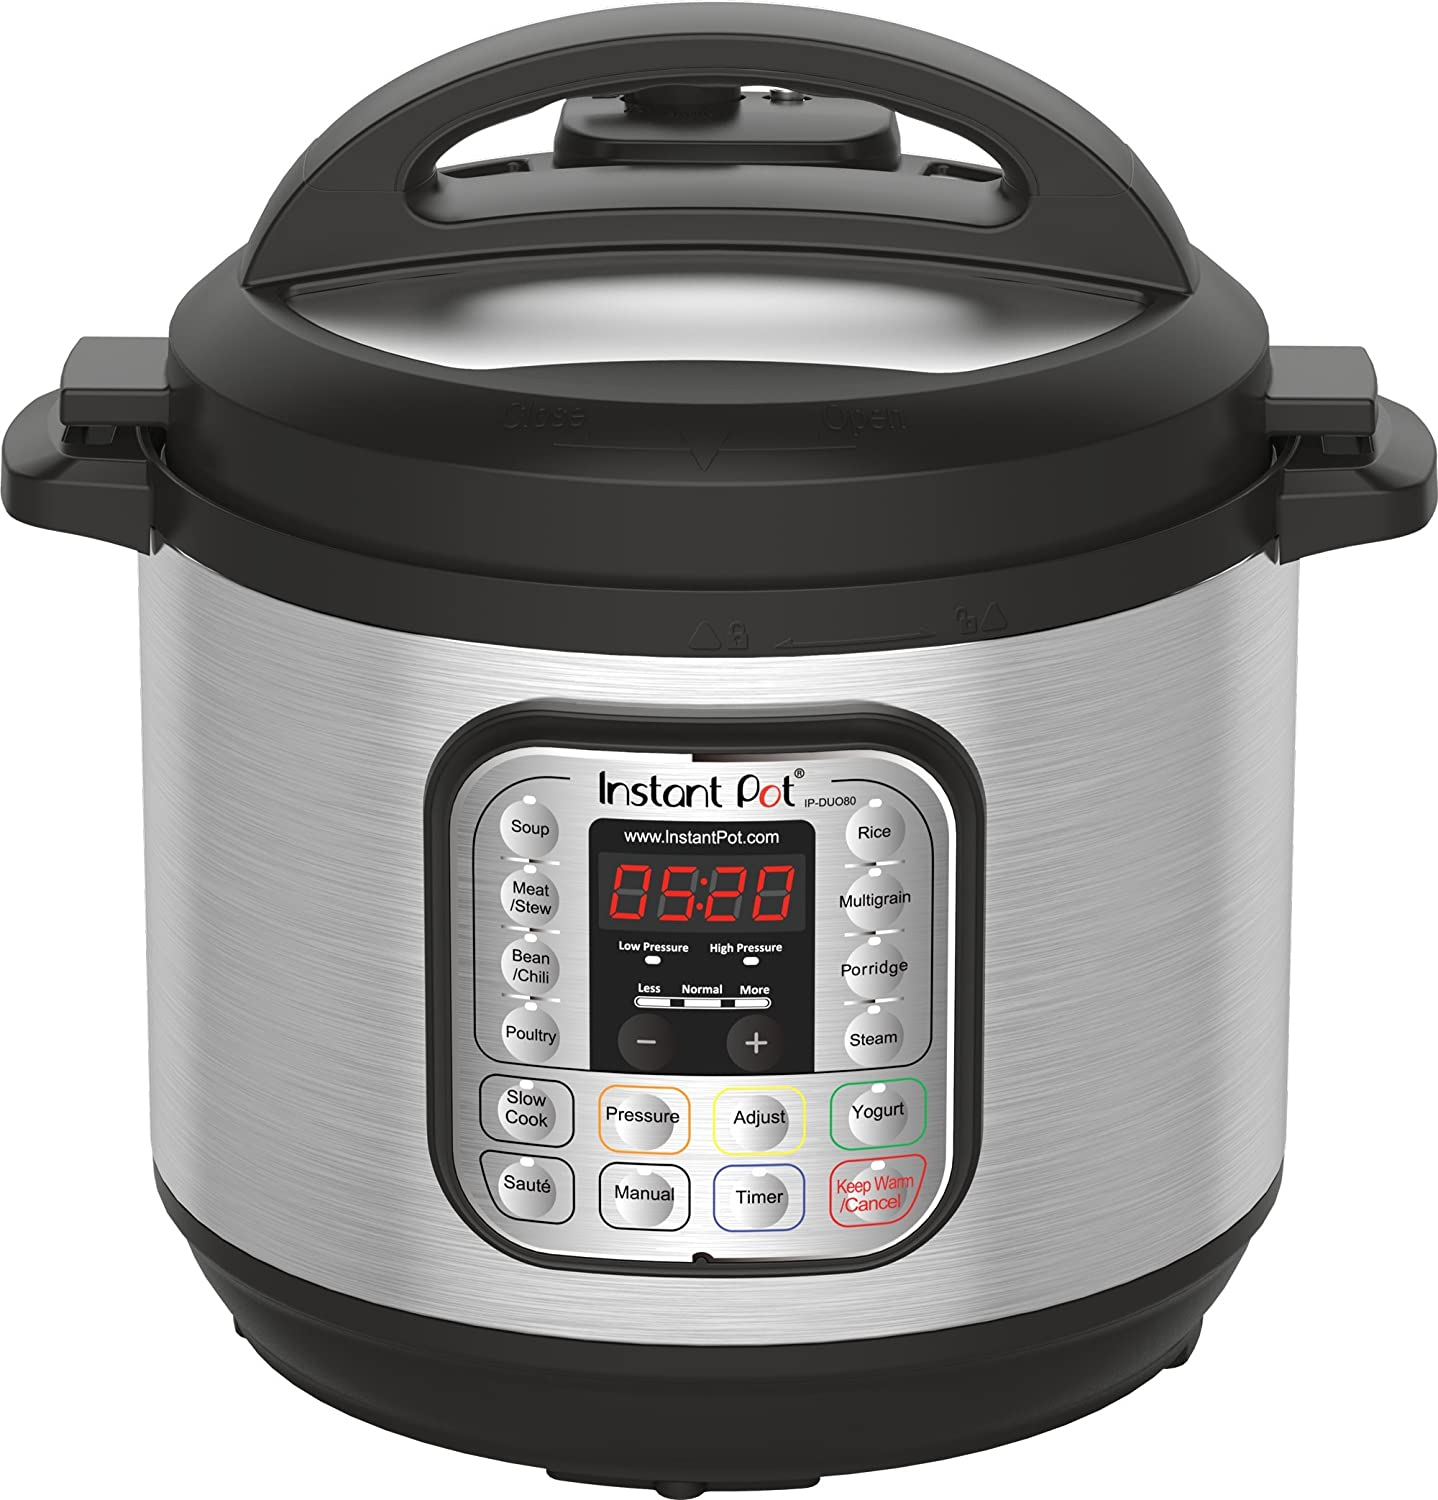 The best Instant Pot for each household size and price range